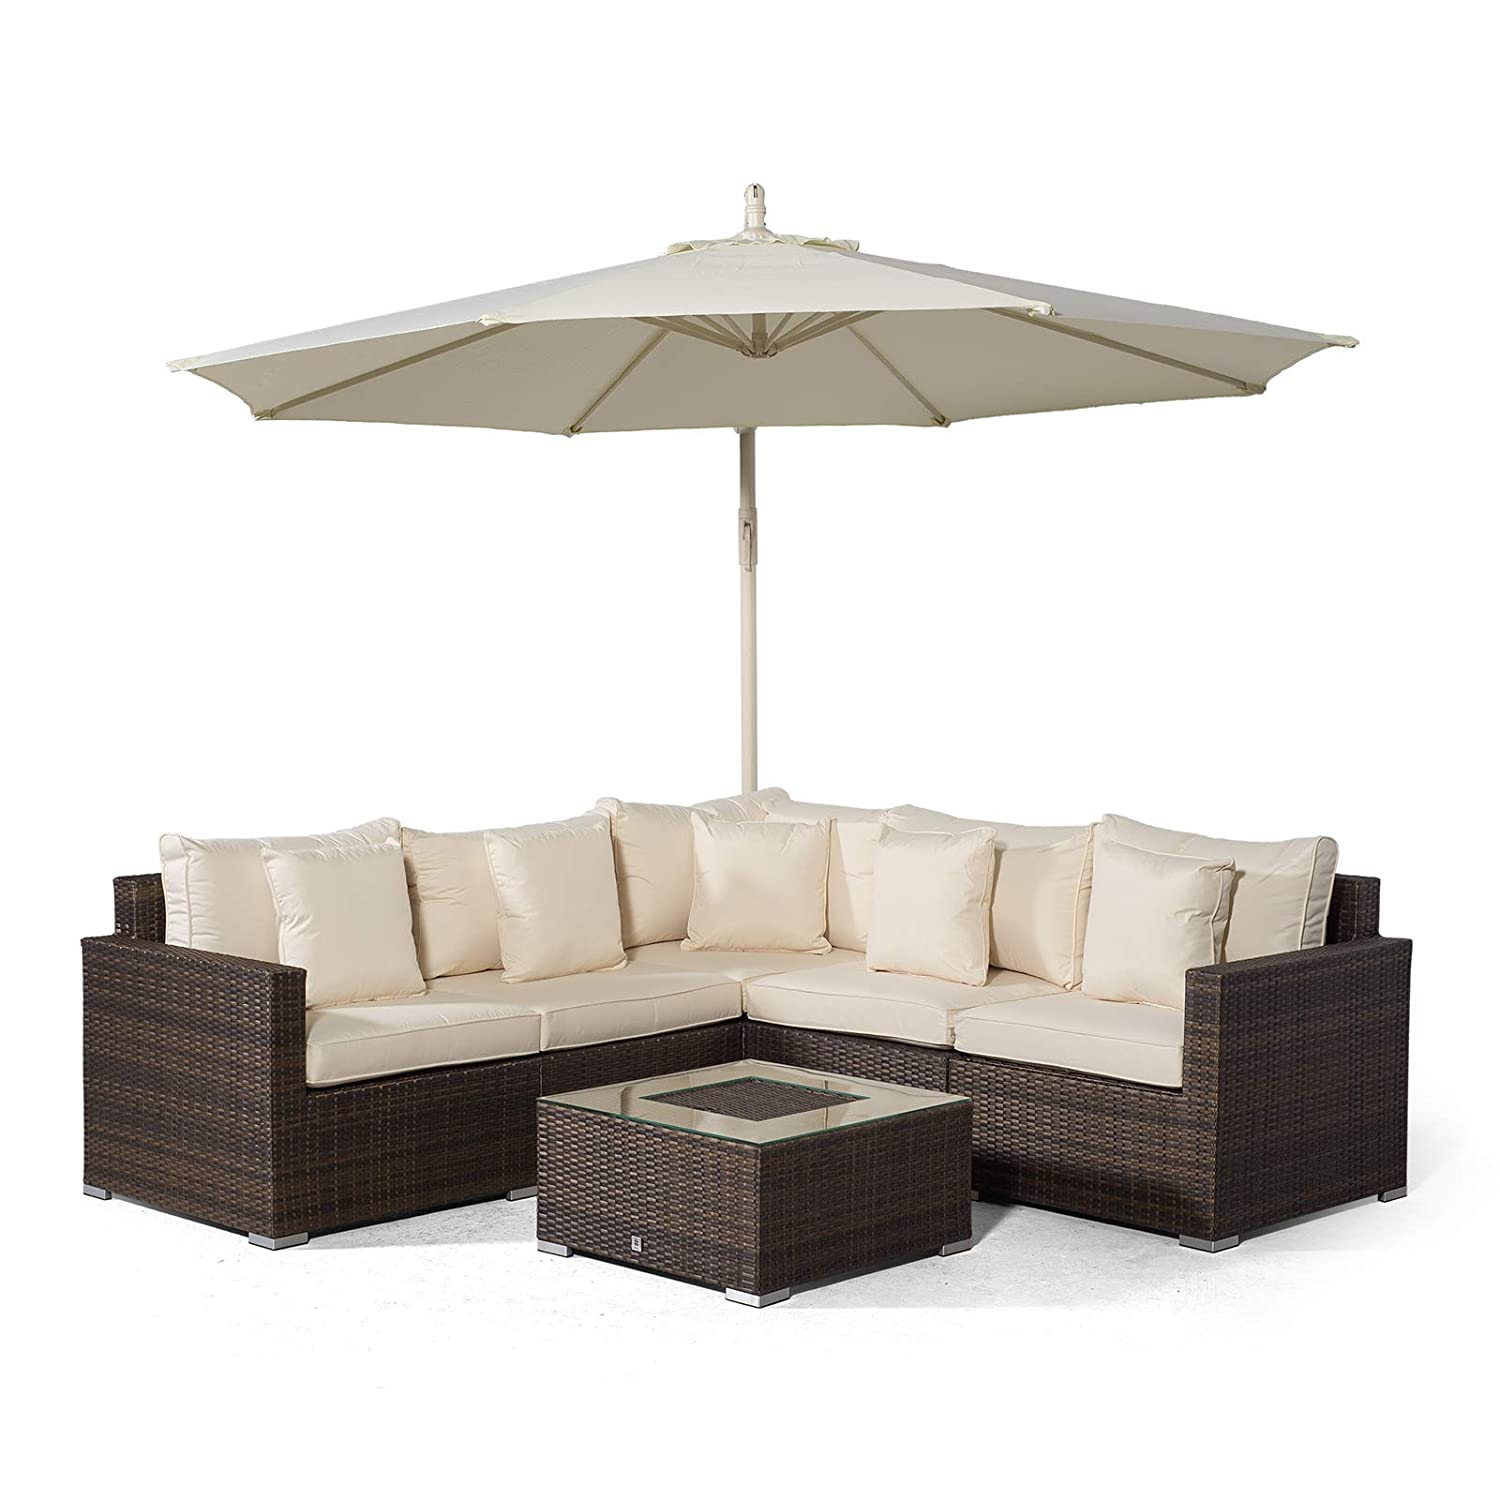 Set Giardino In Rattan.Giardino Havana 5 Seat Brown Rattan Corner Sofa Set Drinks